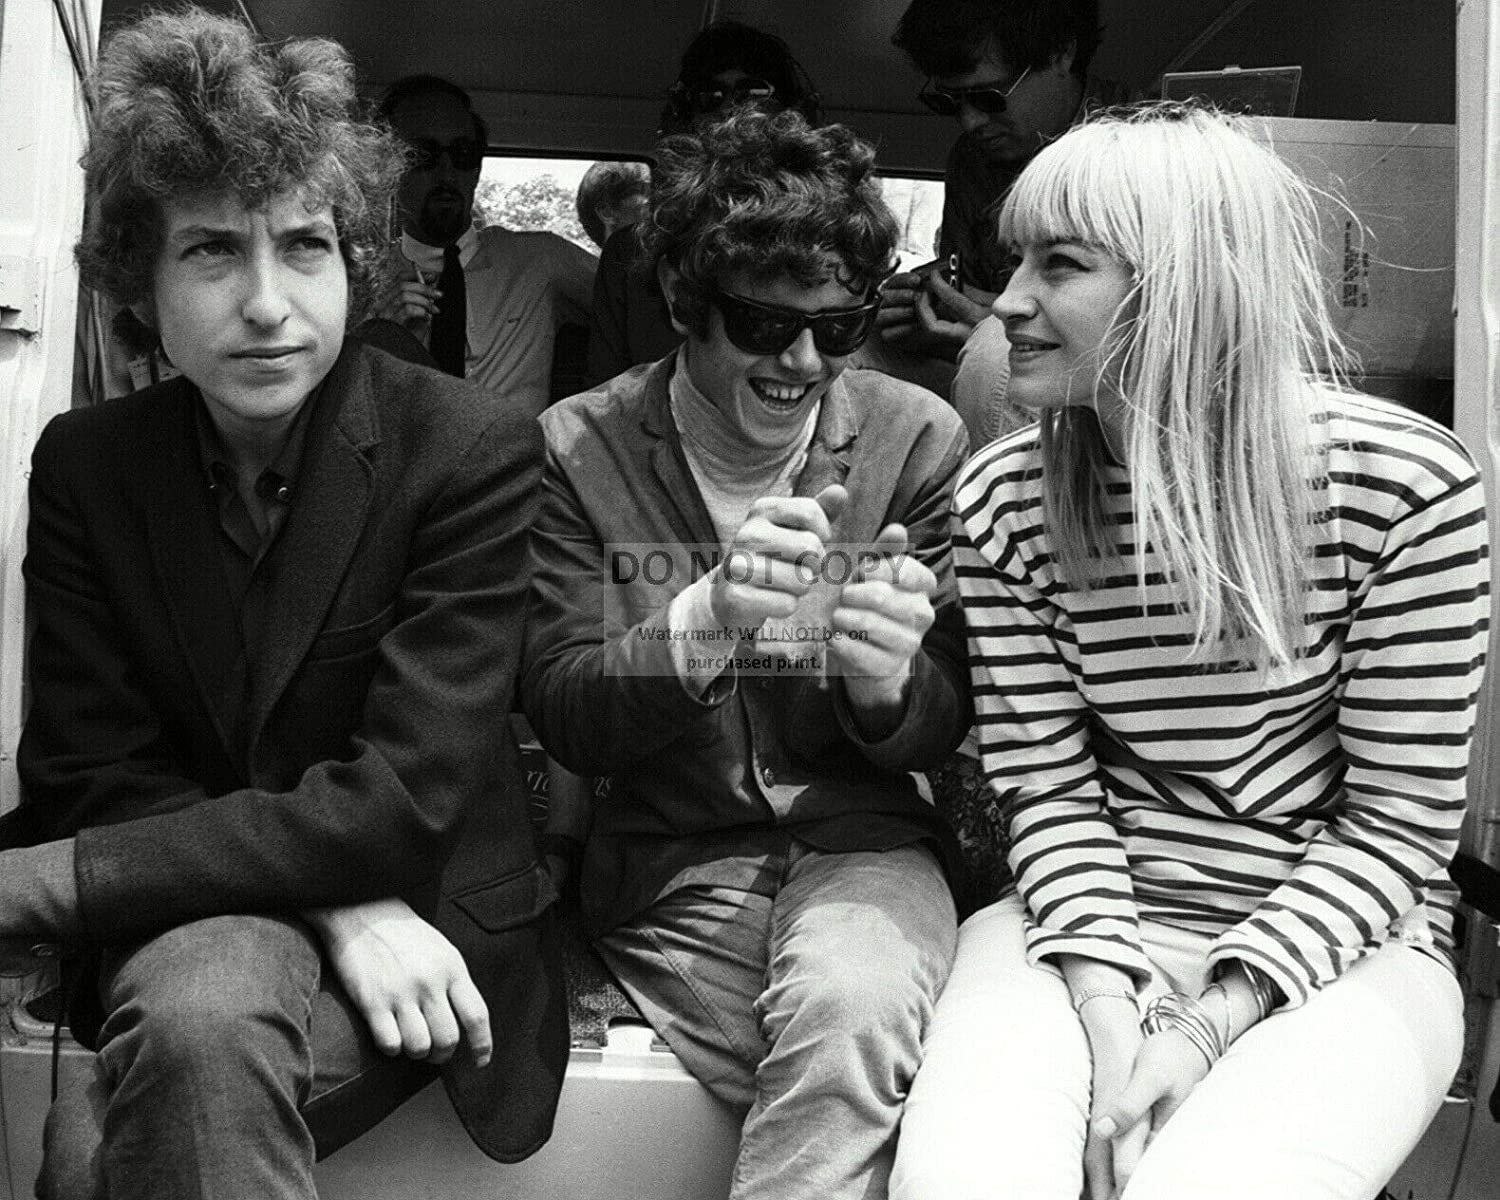 AB-456 Donovan and Mary Travers in 1965-8X10 Publicity Photo bucraft BOB Dylan